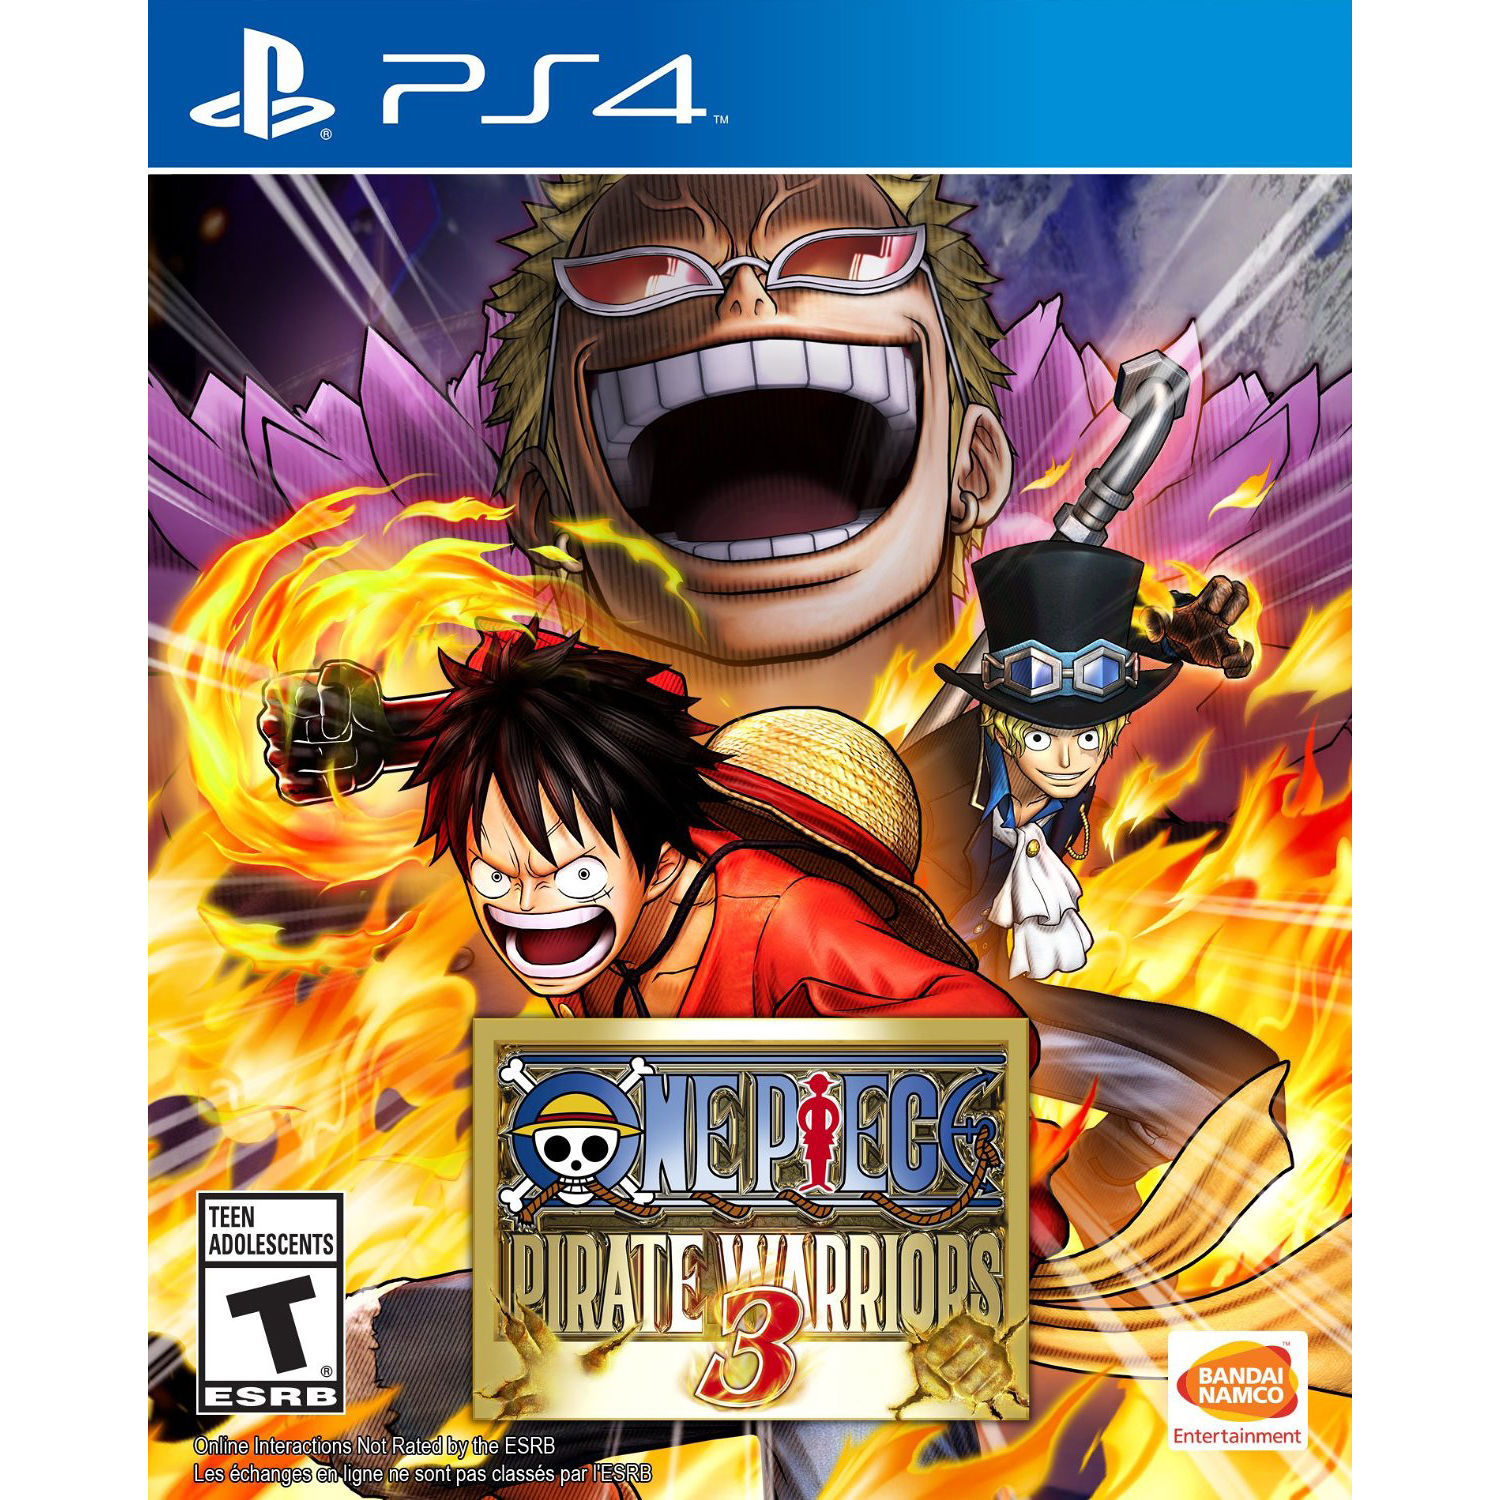 BANDAI NAMCO One Piece: Pirate Warriors 3 (PS4) 12011 B&H